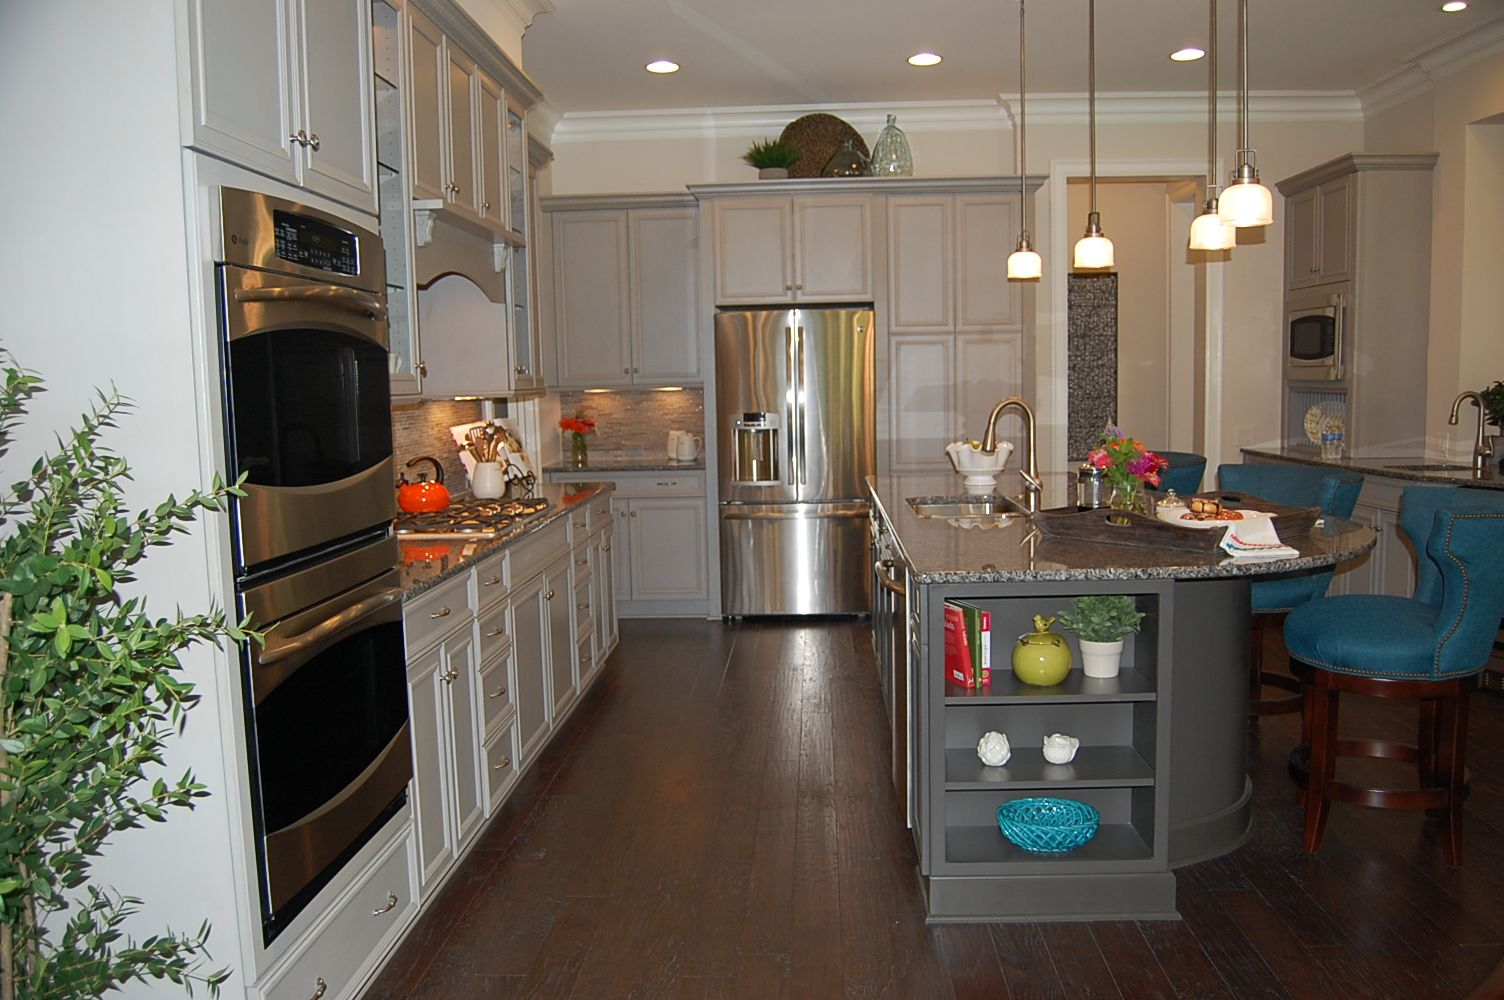 kitchen island with seating and shelving and small sink kitchen remodel kitchen island with on kitchen island ideas with sink id=71221